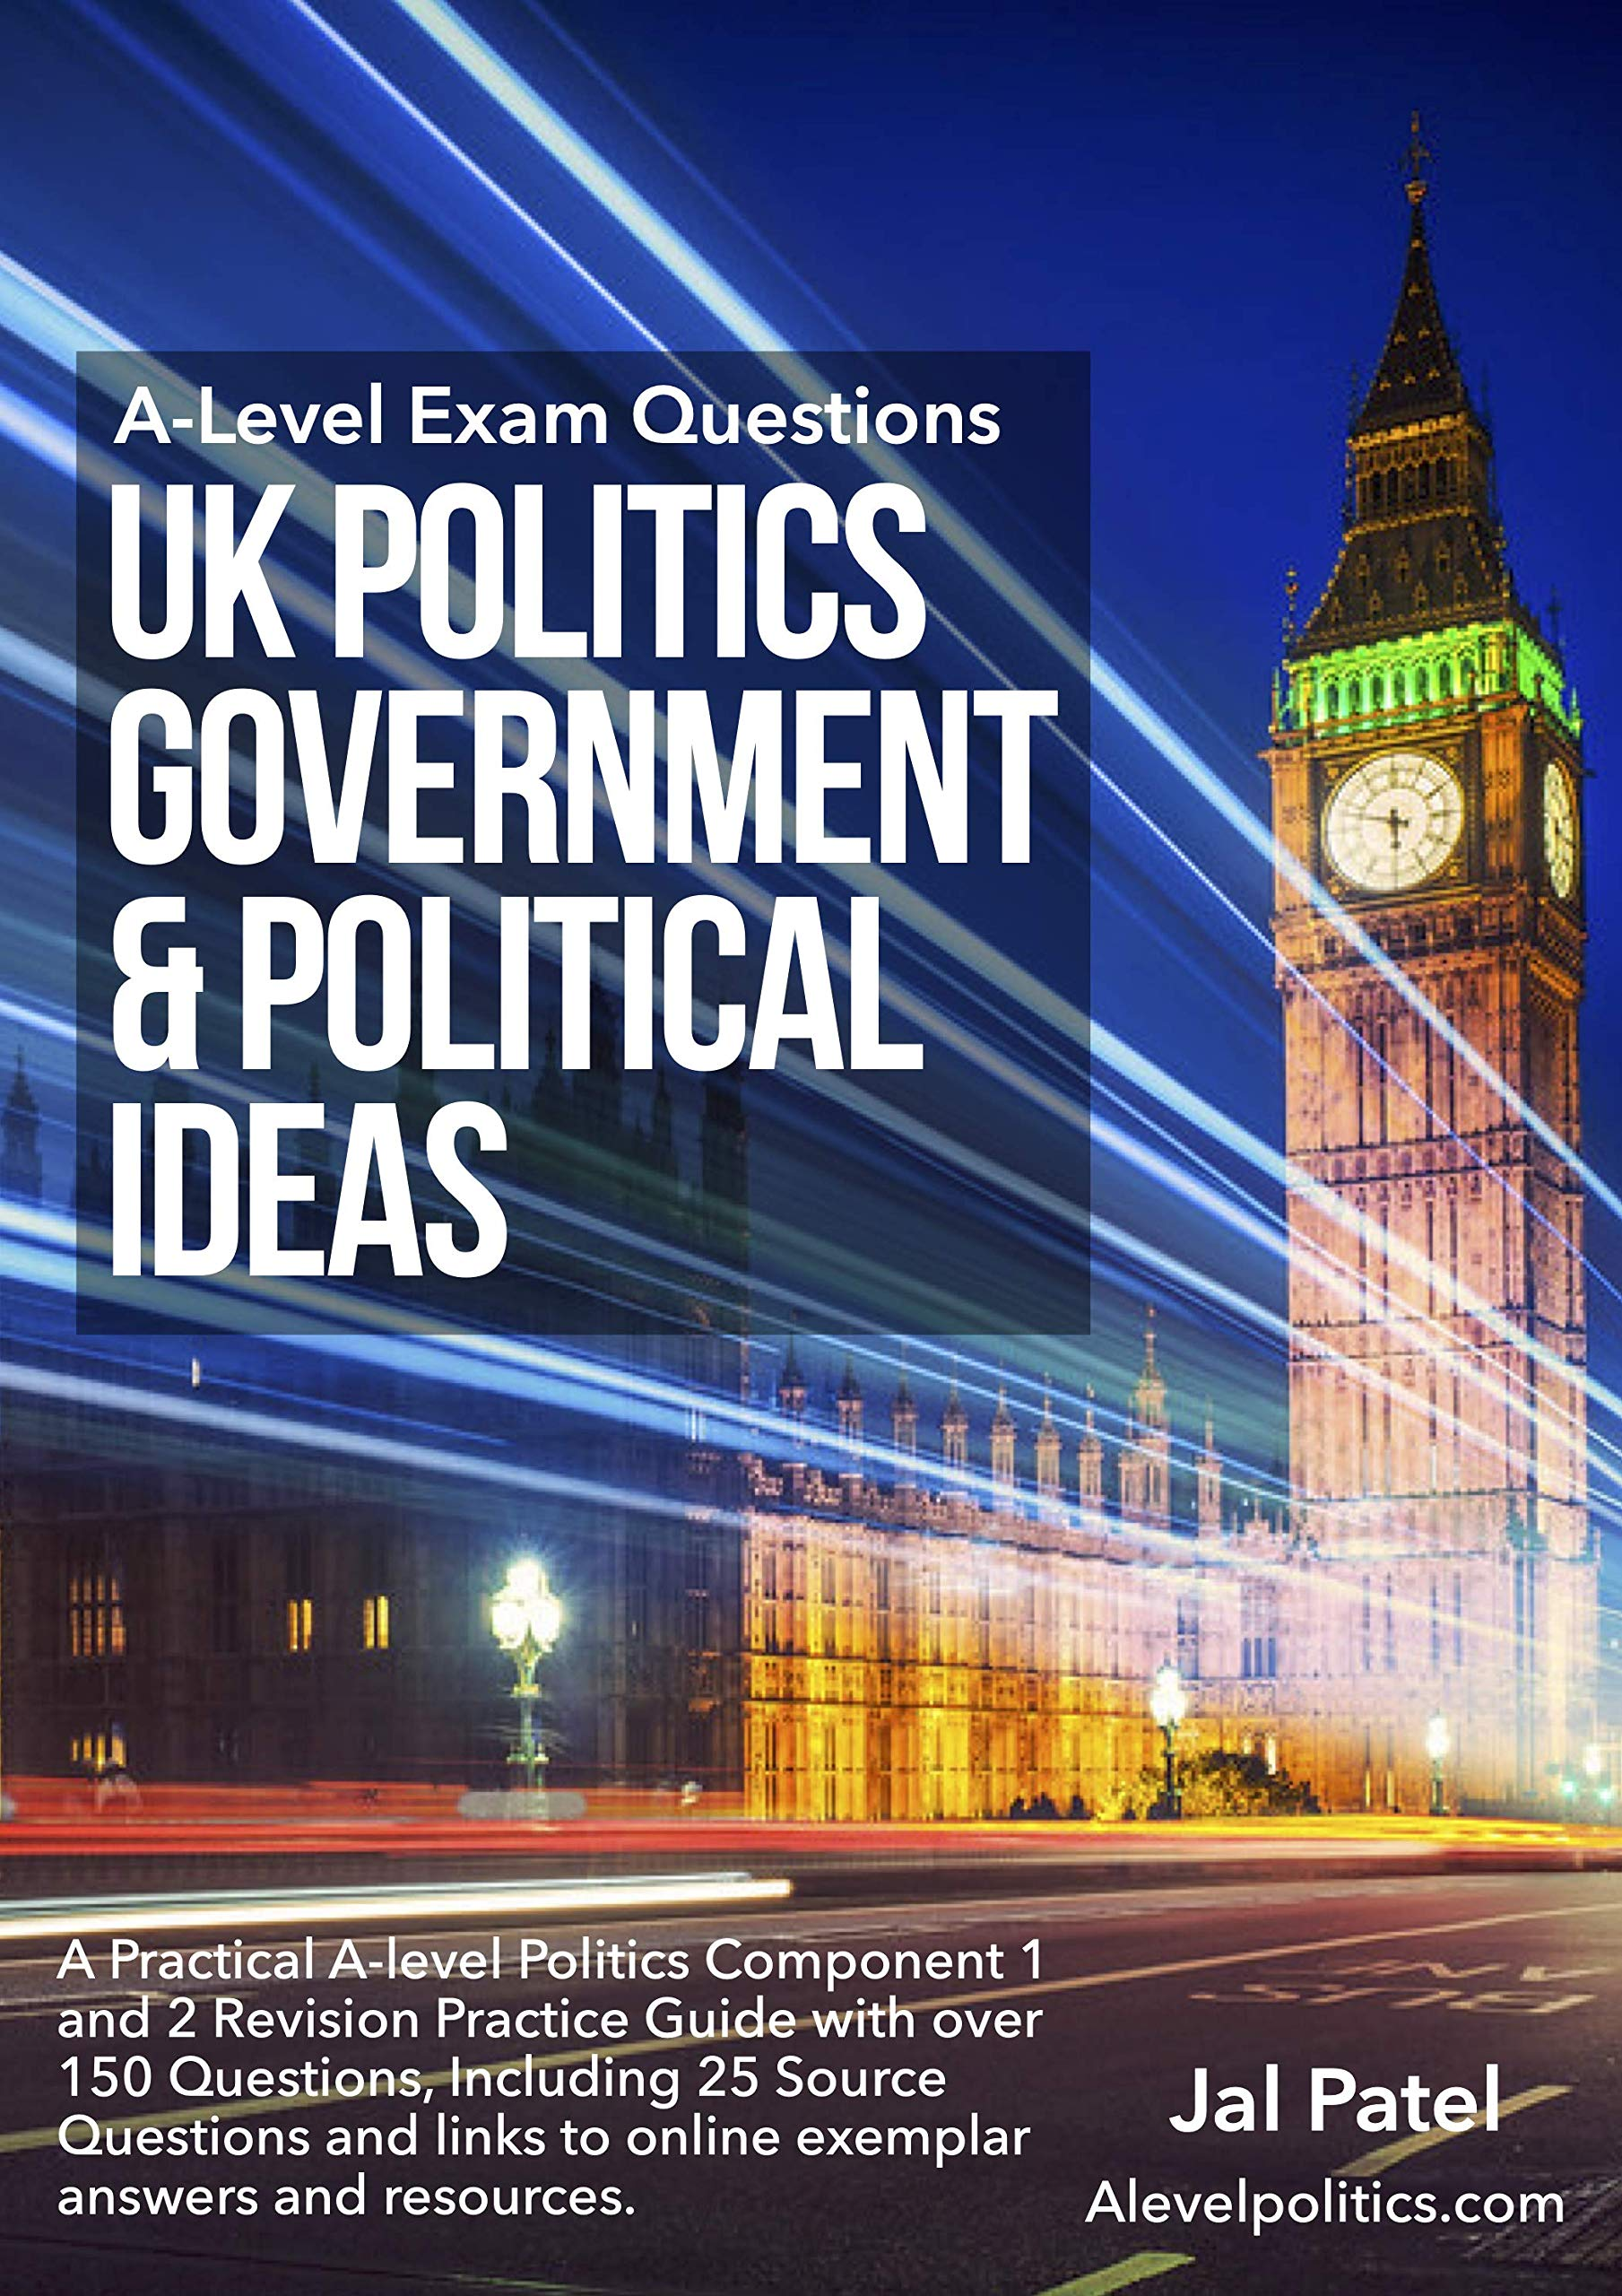 A-Level UK Politics Government & Political Ideas Revision Practice: A Practical A-Level Politics Component 1 and 2 Revision Practice Guide with over 150 Questions Including 25 Source Questions